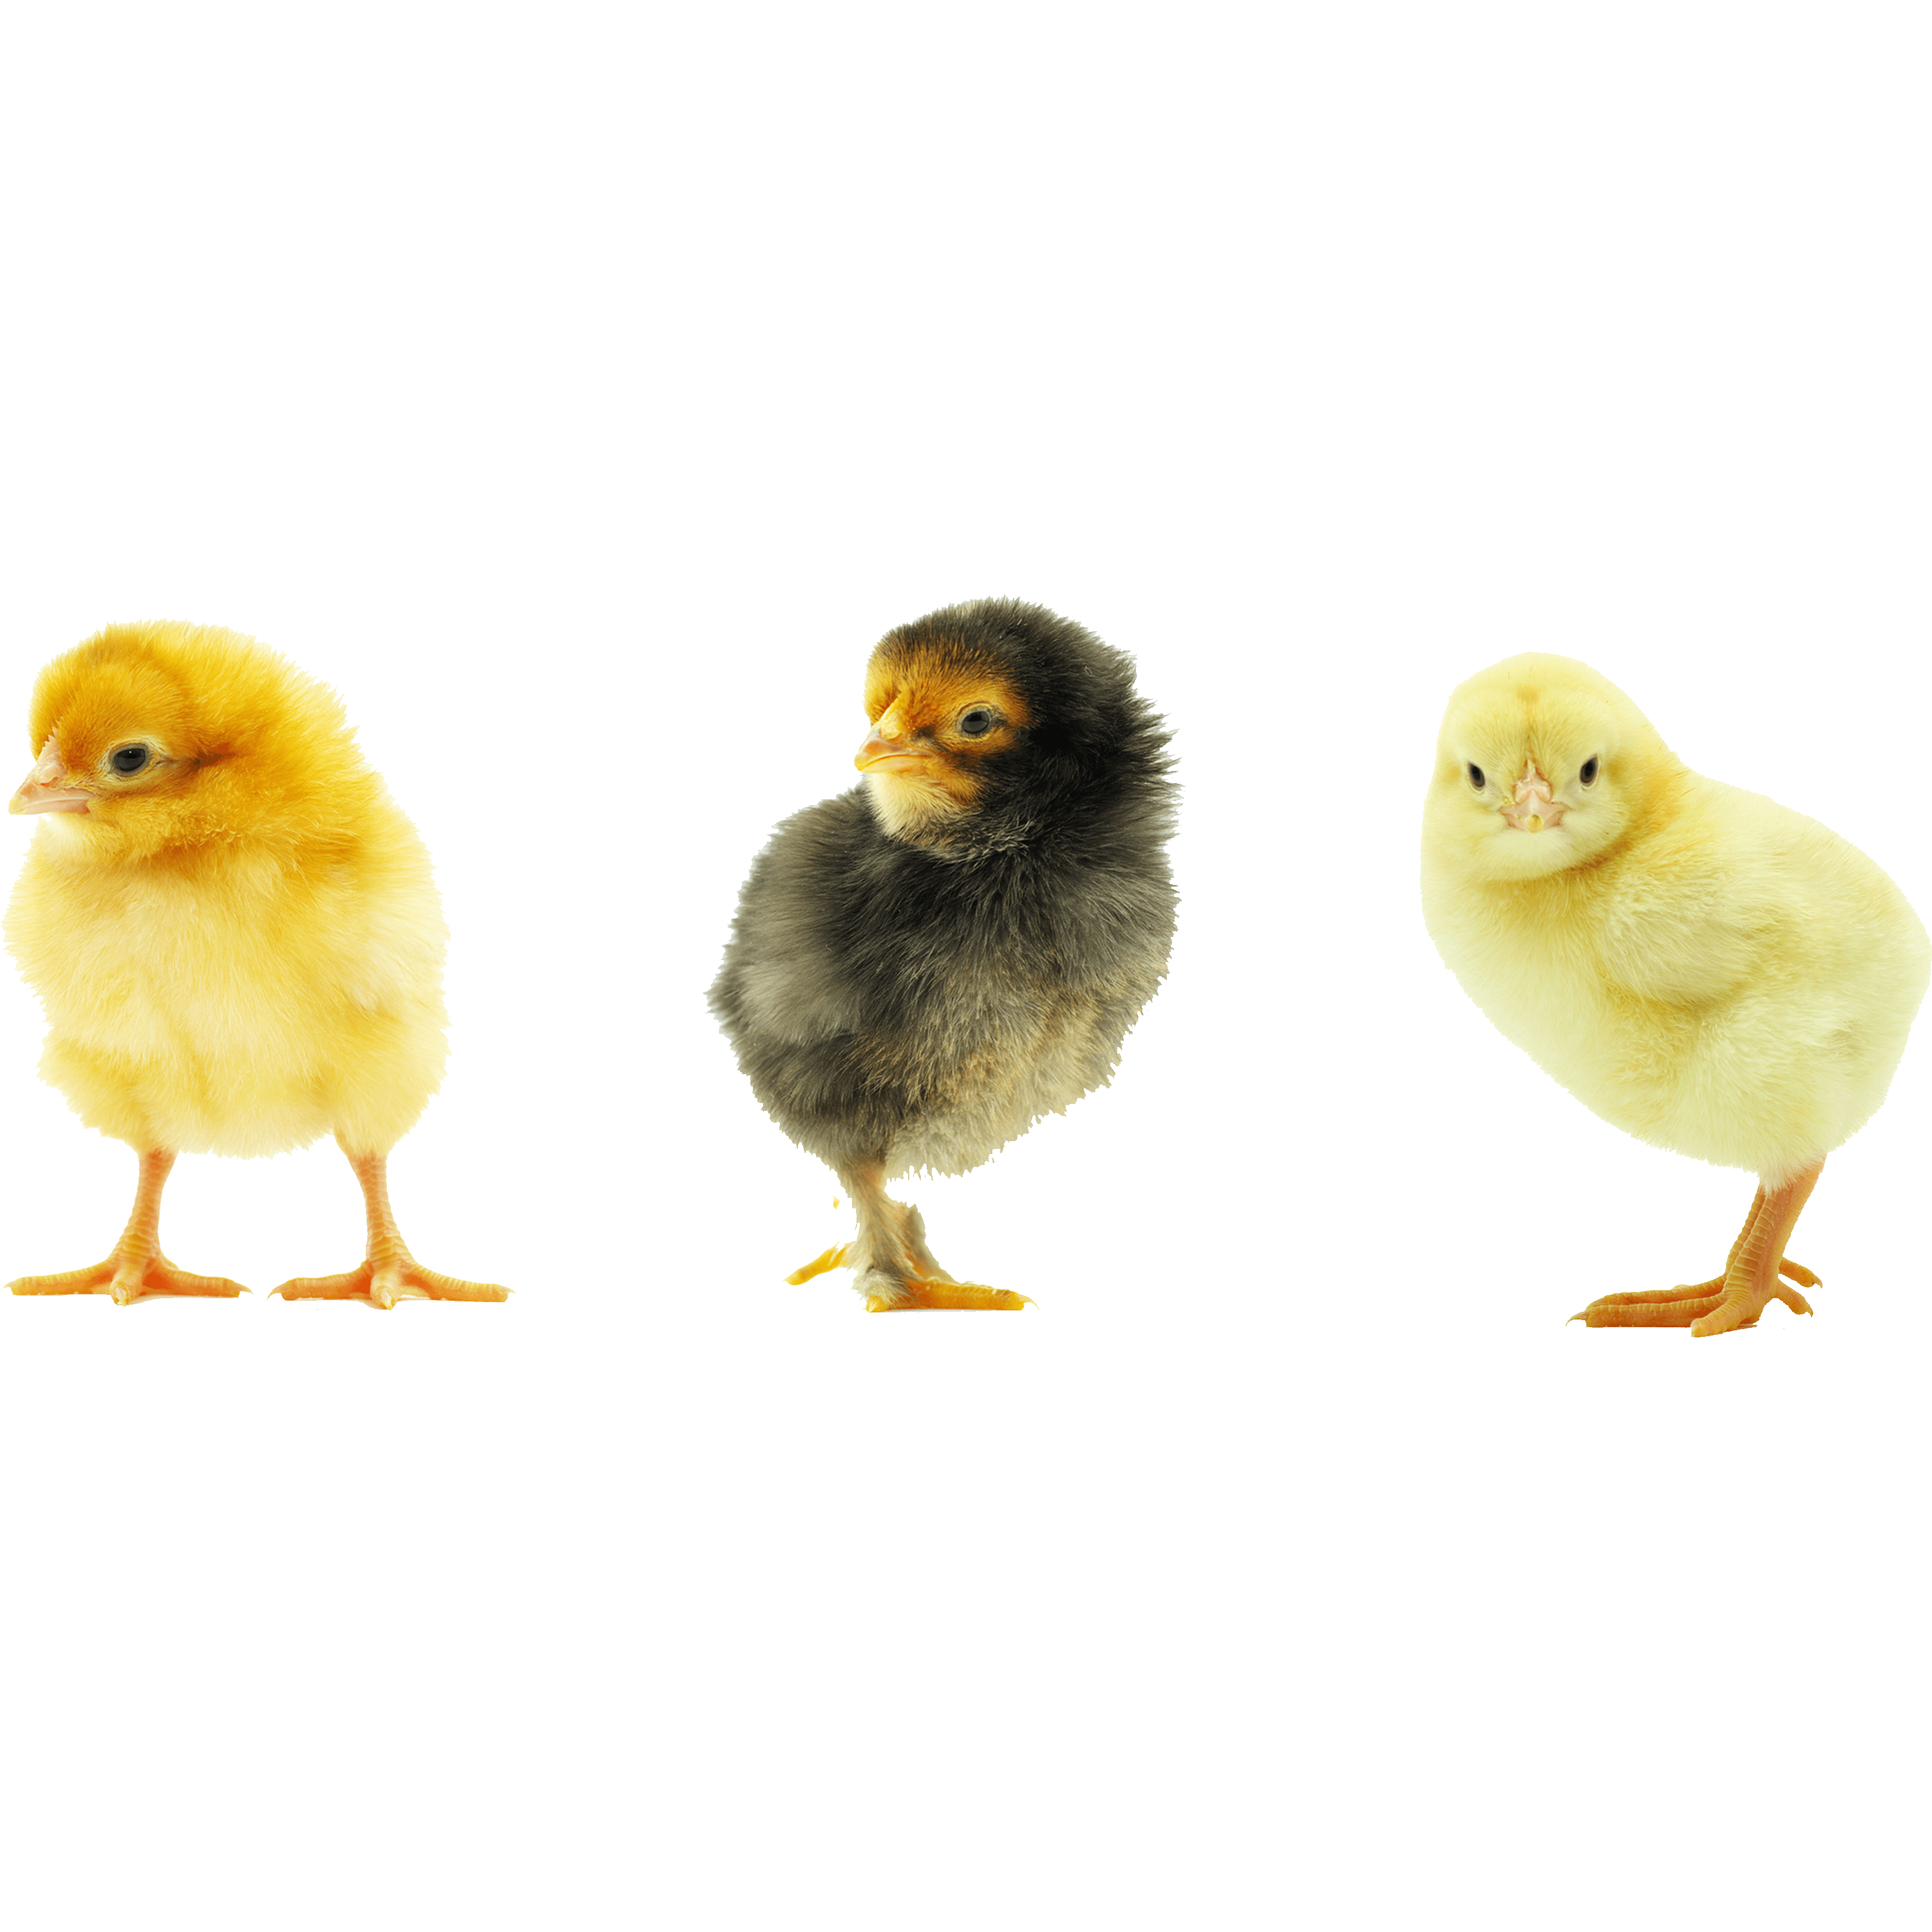 Baby Chick Transparent Gallery